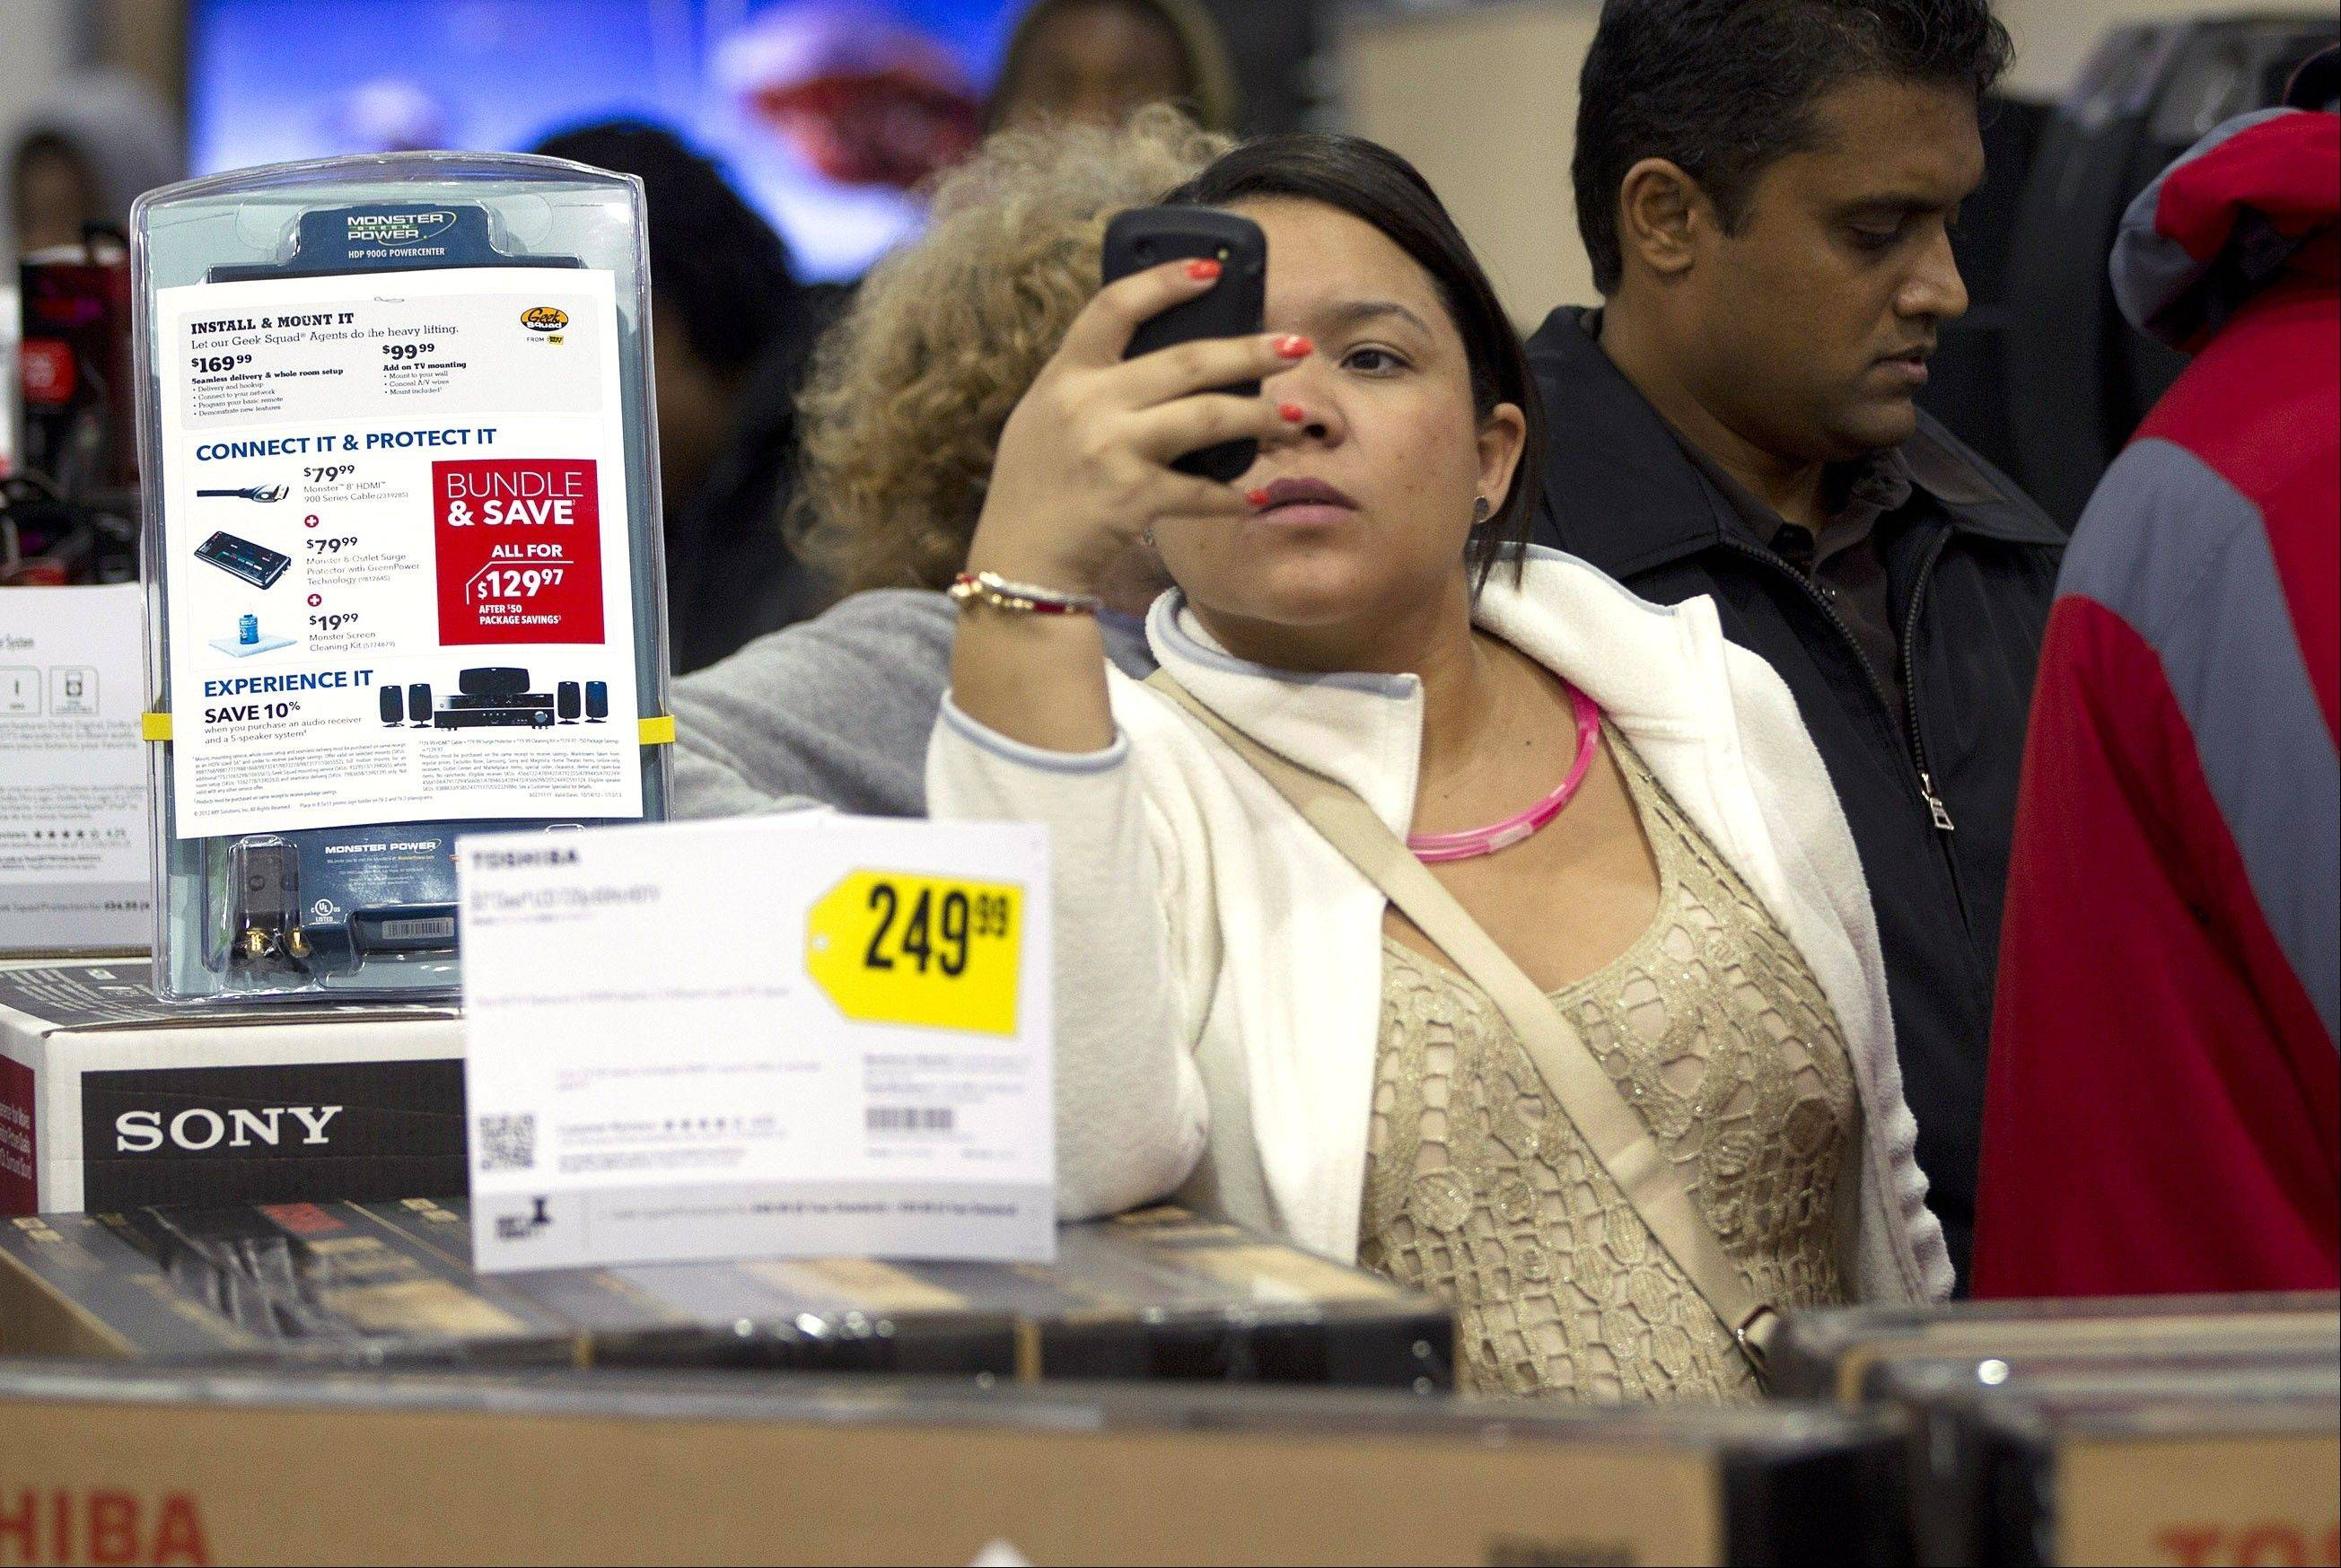 A shopper uses her smartphone at a Best Buy in Pembroke Pines, Fla. Shoppers� actions on Facebook and elsewhere online help dictate what�s in stores during this holiday season.